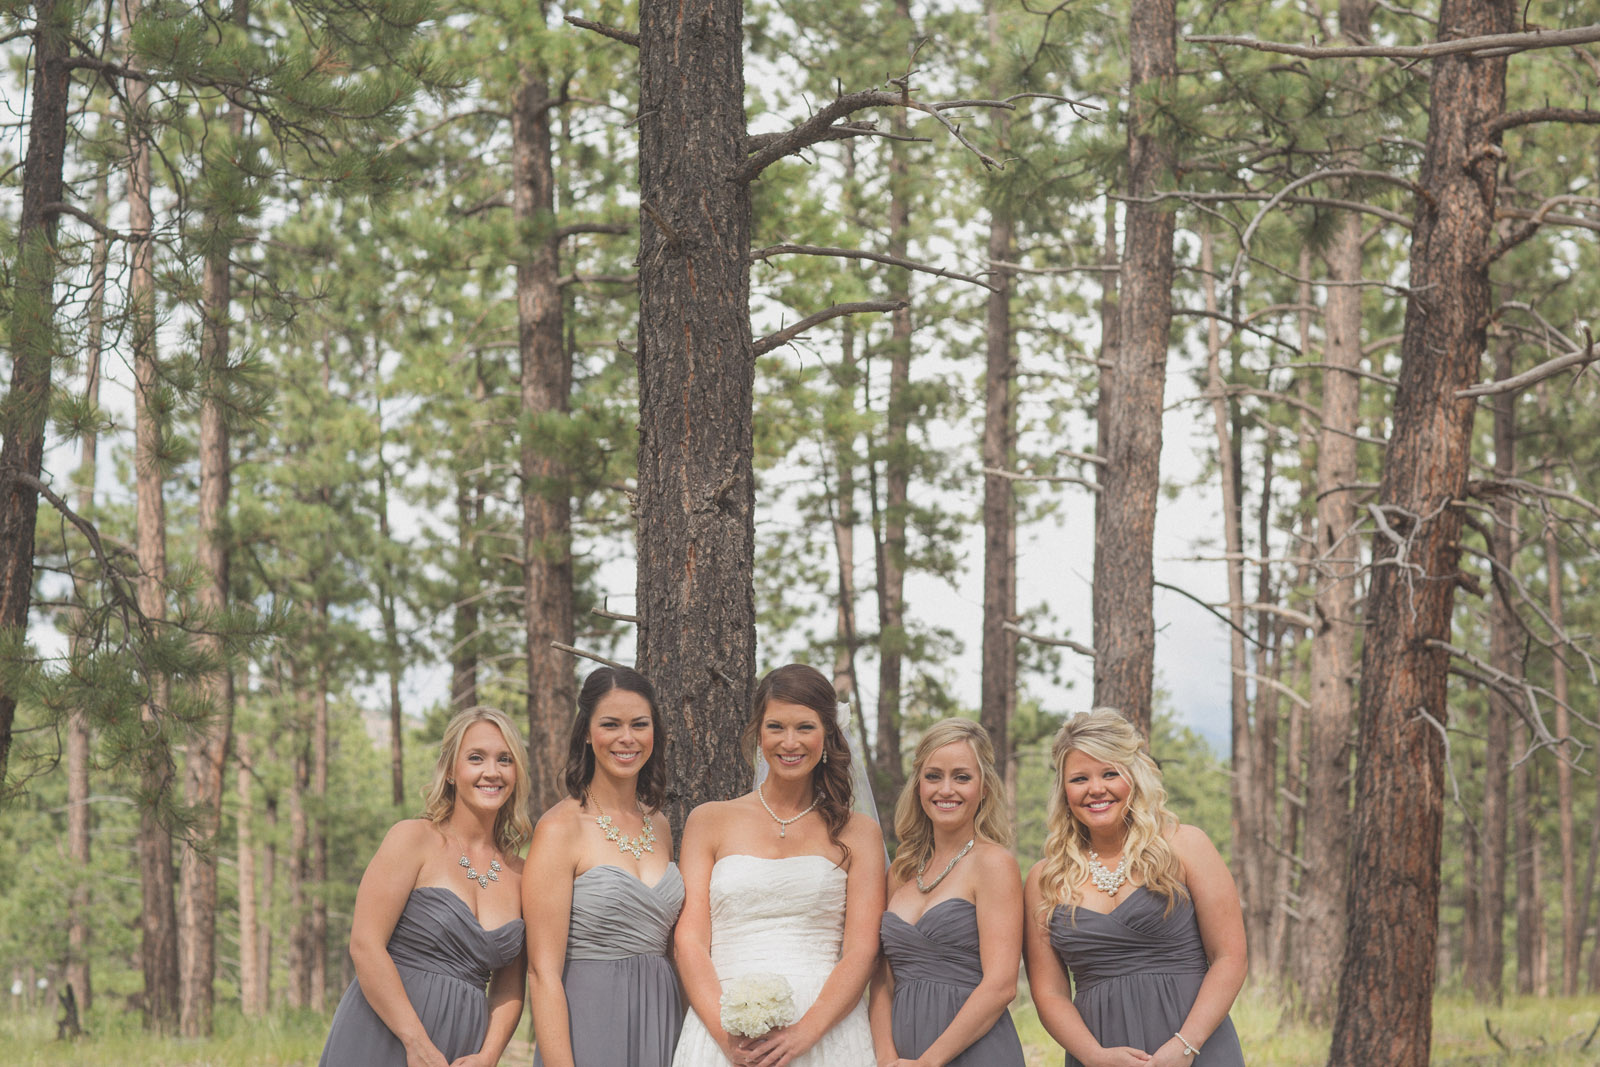 093-groom-wedding-cabin-woods-forest-pictures-photos-dress-photography-portraits-wedding-party-party